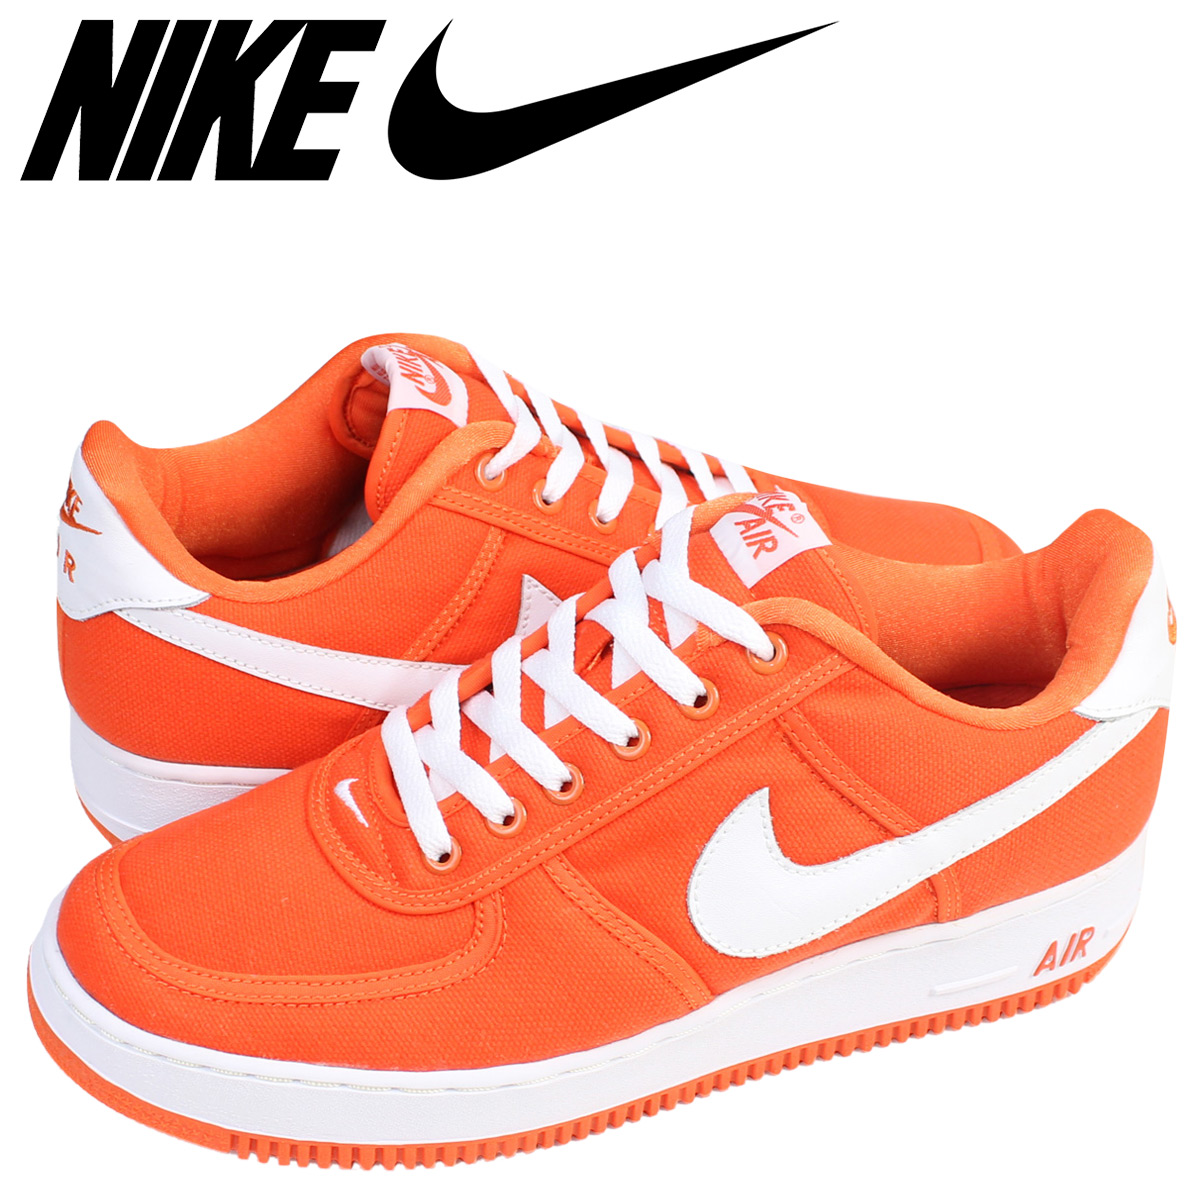 online for sale great deals great fit NIKE Nike air force 1 sneakers AIR FORCE 1 CANVAS 624,020-811 men's shoes  orange